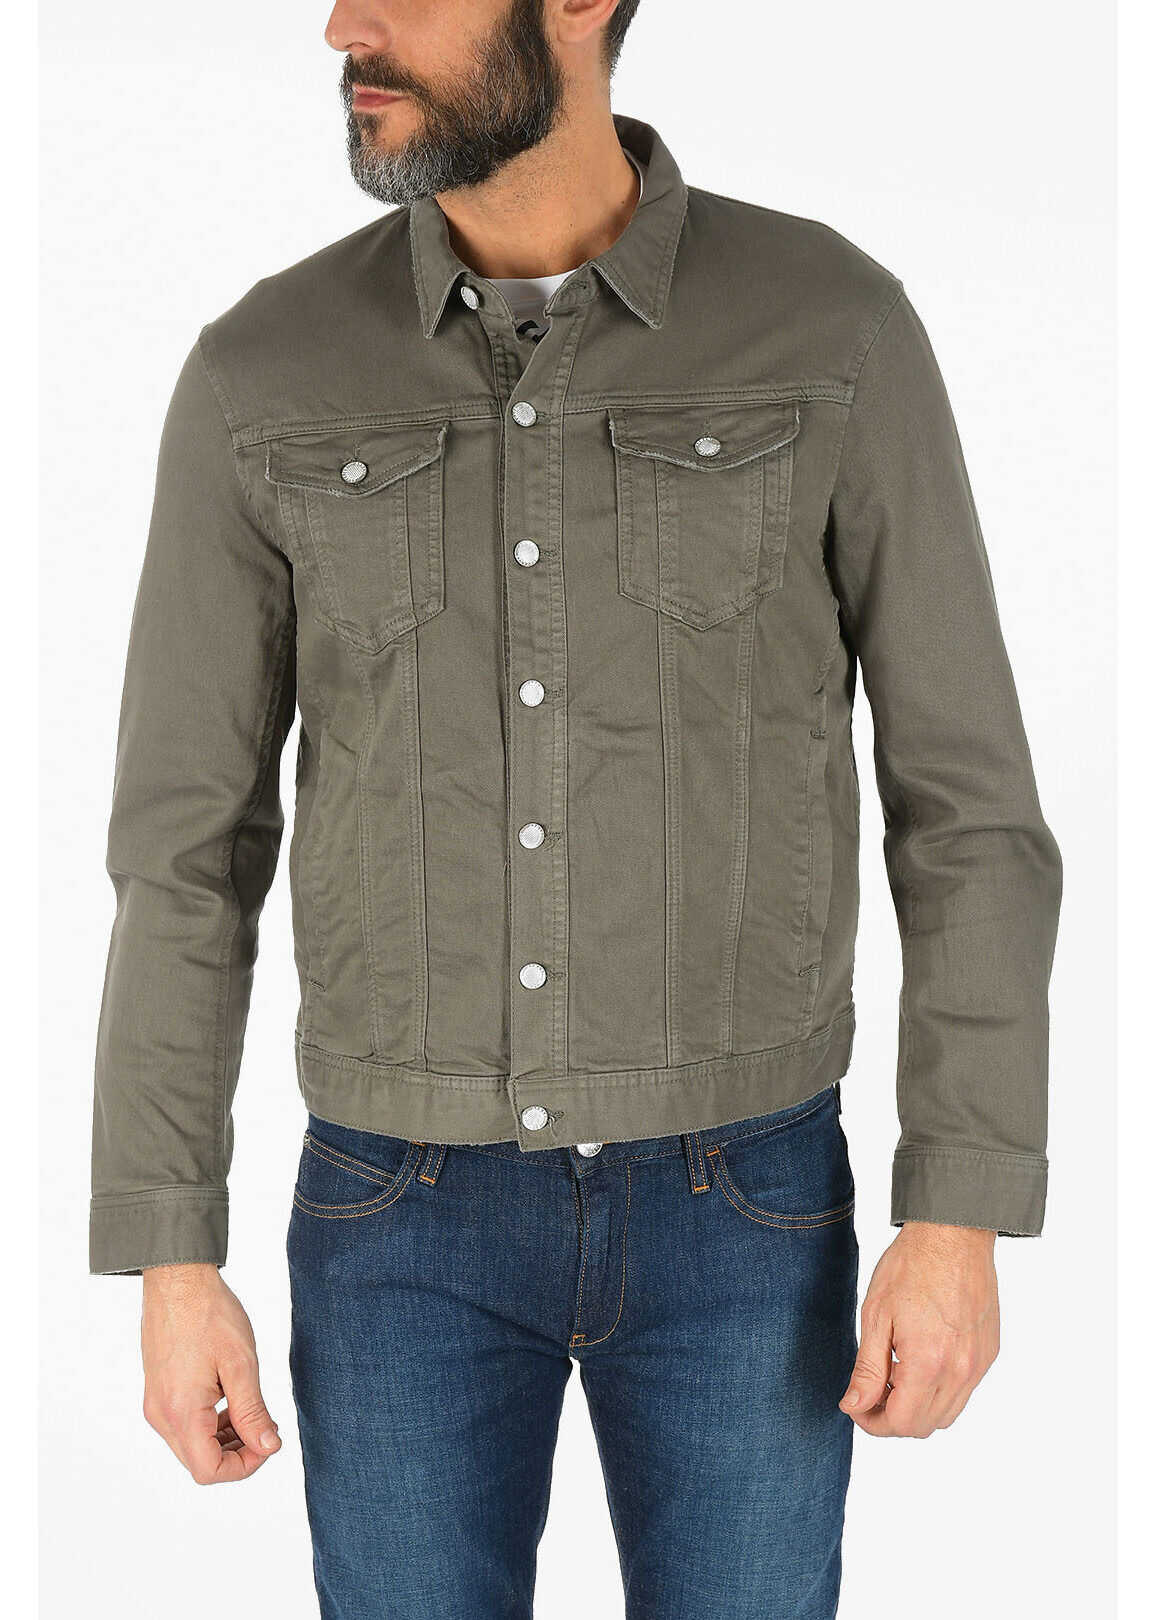 Armani ARMANI EXCHANGE Denim Jacket GRAY imagine